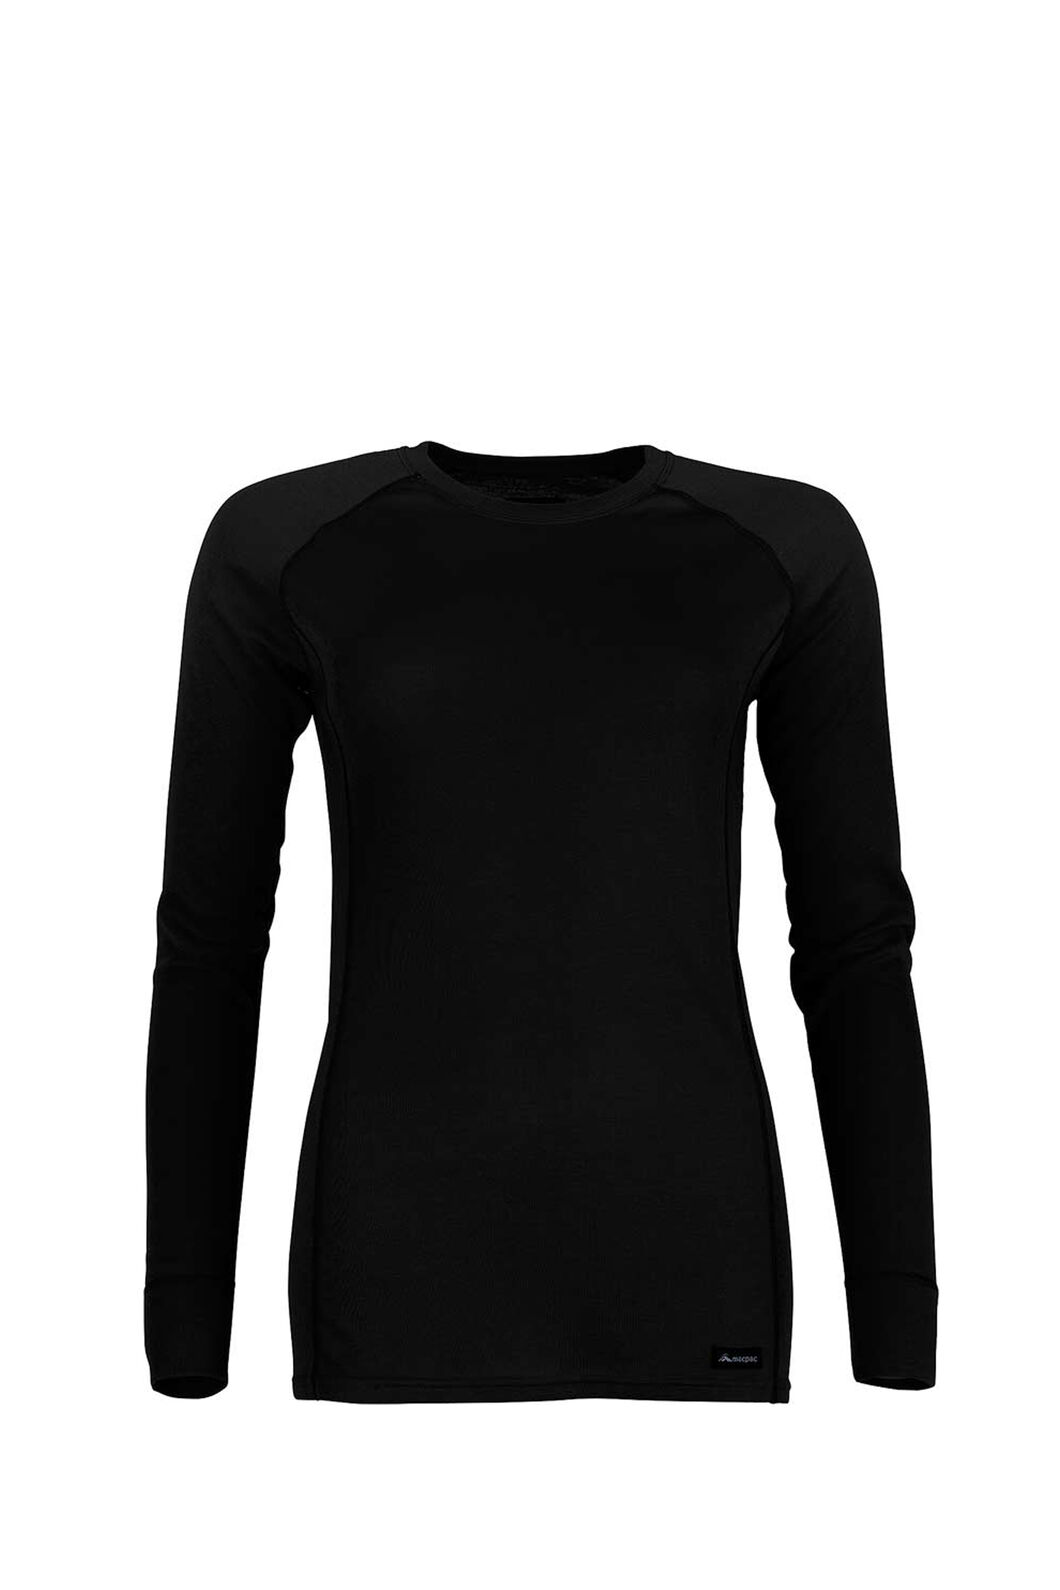 Macpac Geothermal Long Sleeve Top - Women's, Black, hi-res